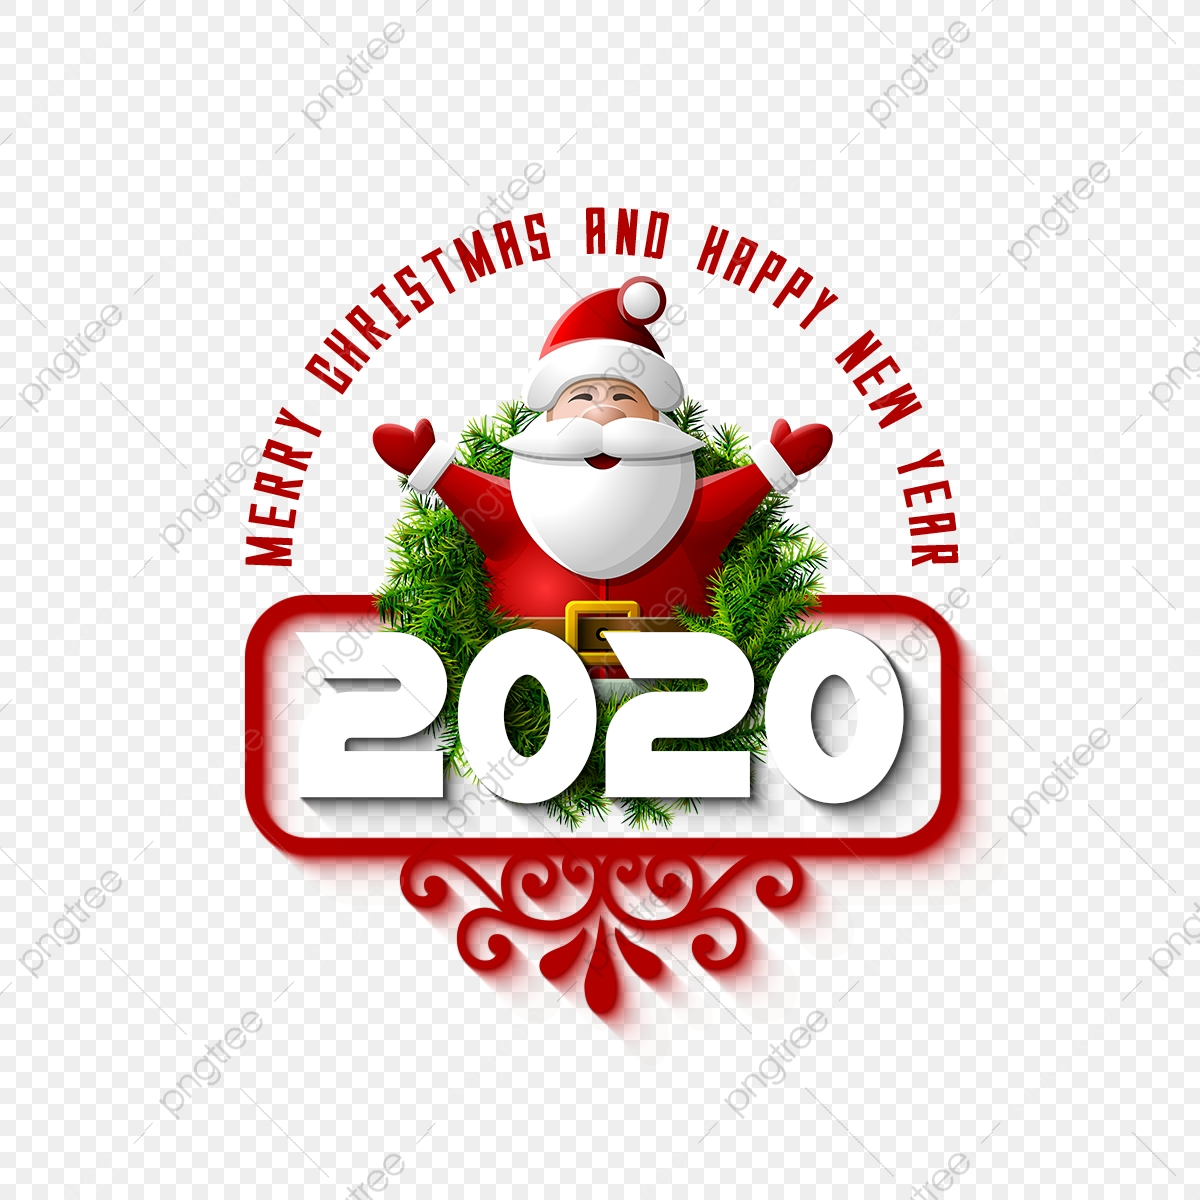 Now Merry Christmas 2020 Merry Christmas And Happy 2020, Merry Christmas, Label, Christmas